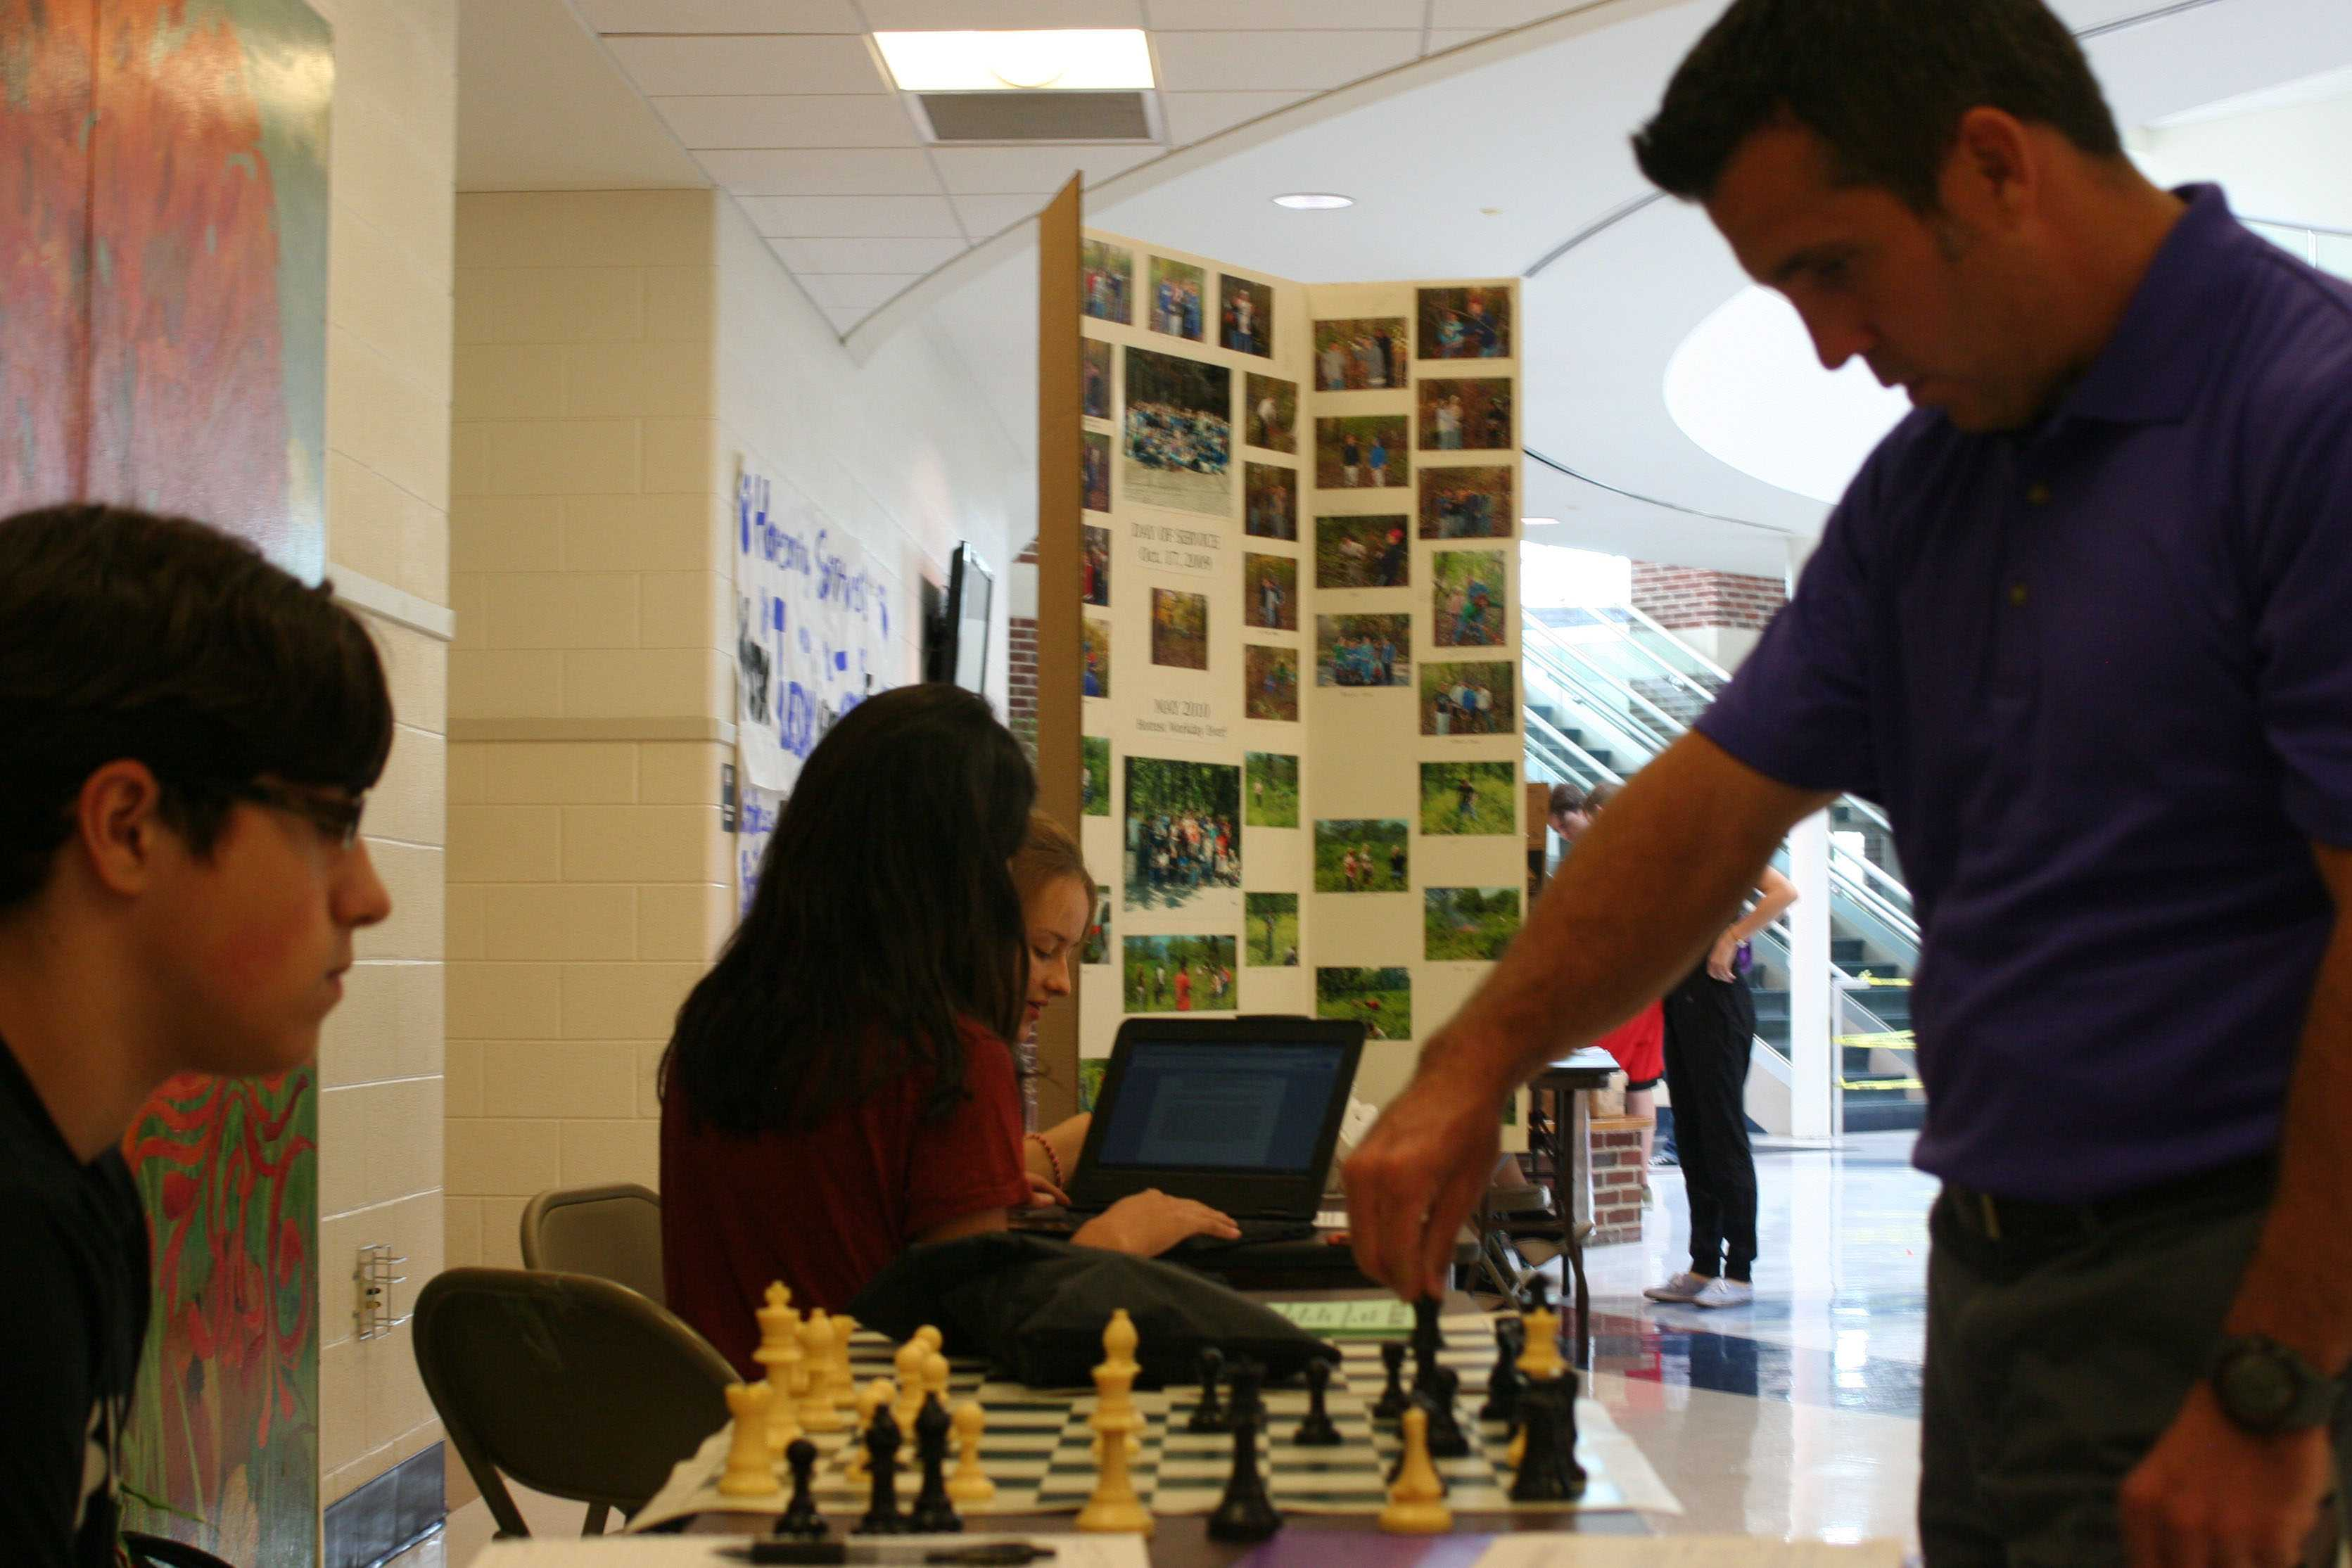 Dean Neil Dughetti and Jackson Hajer play chess at the Chess Club table.